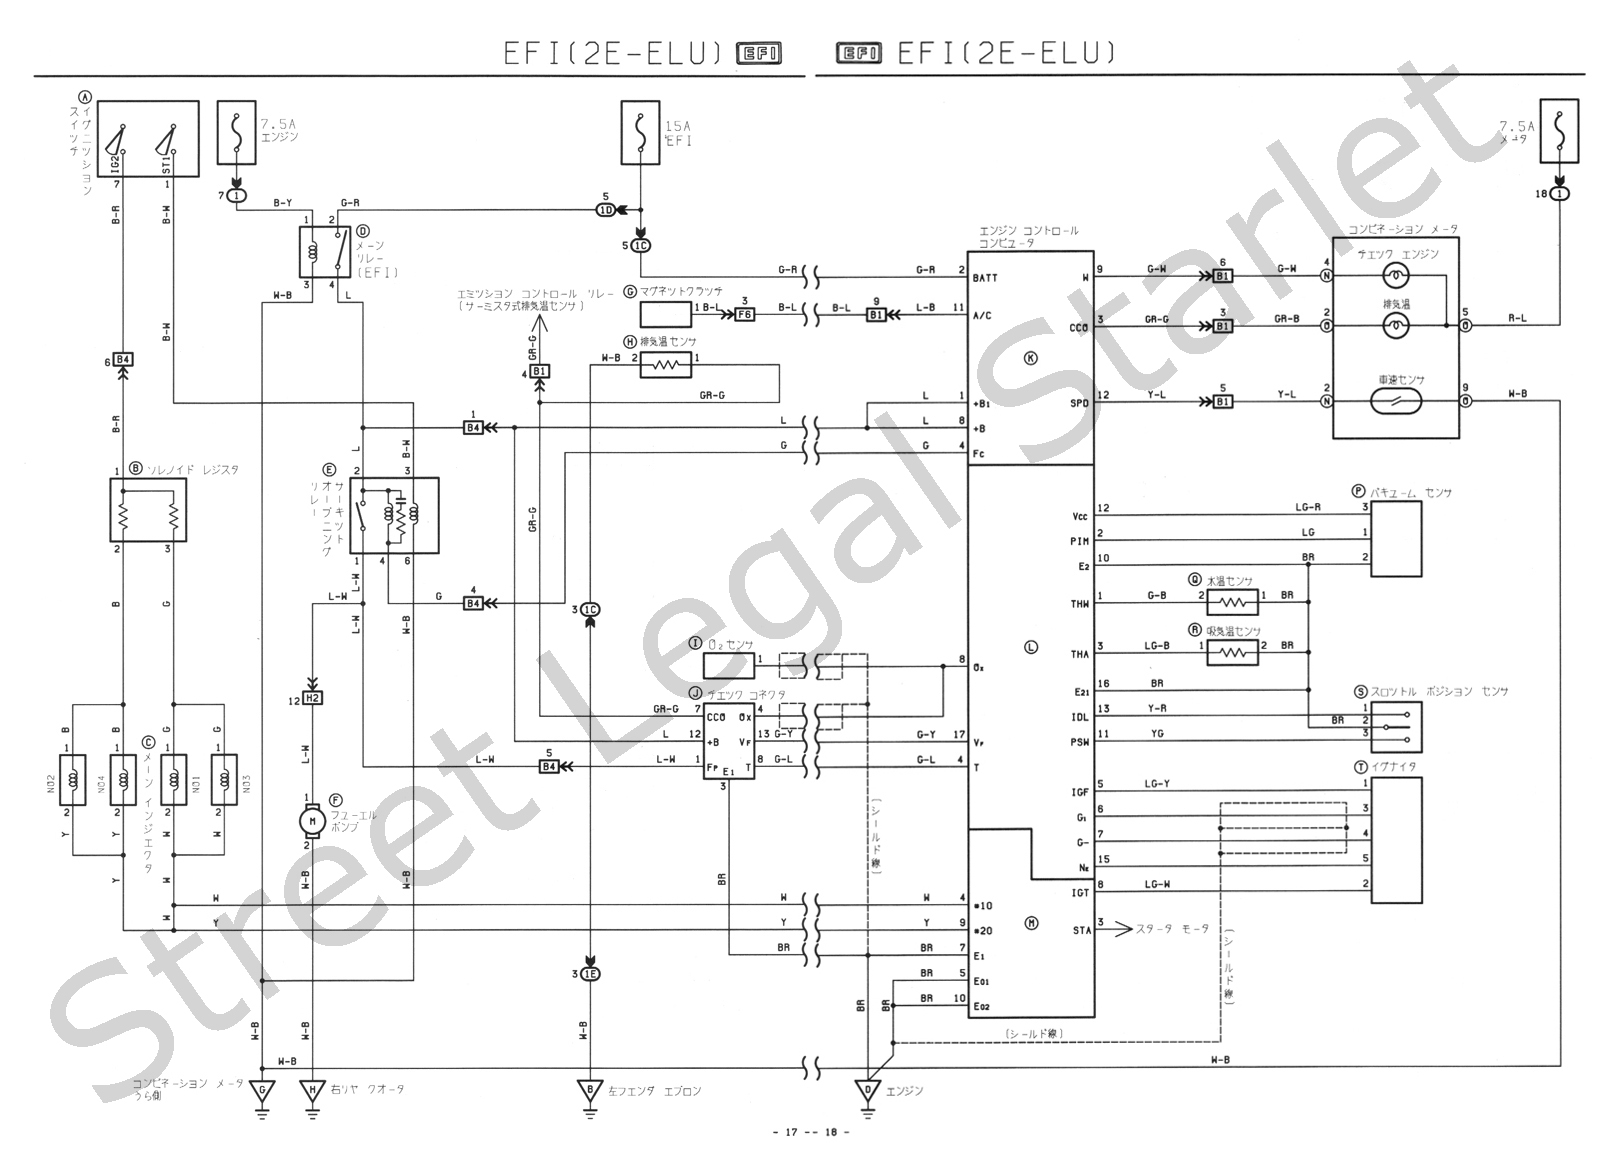 Ebook PDF Pictures Of A 1991 Toyota Corolla Efi Engine Diagram